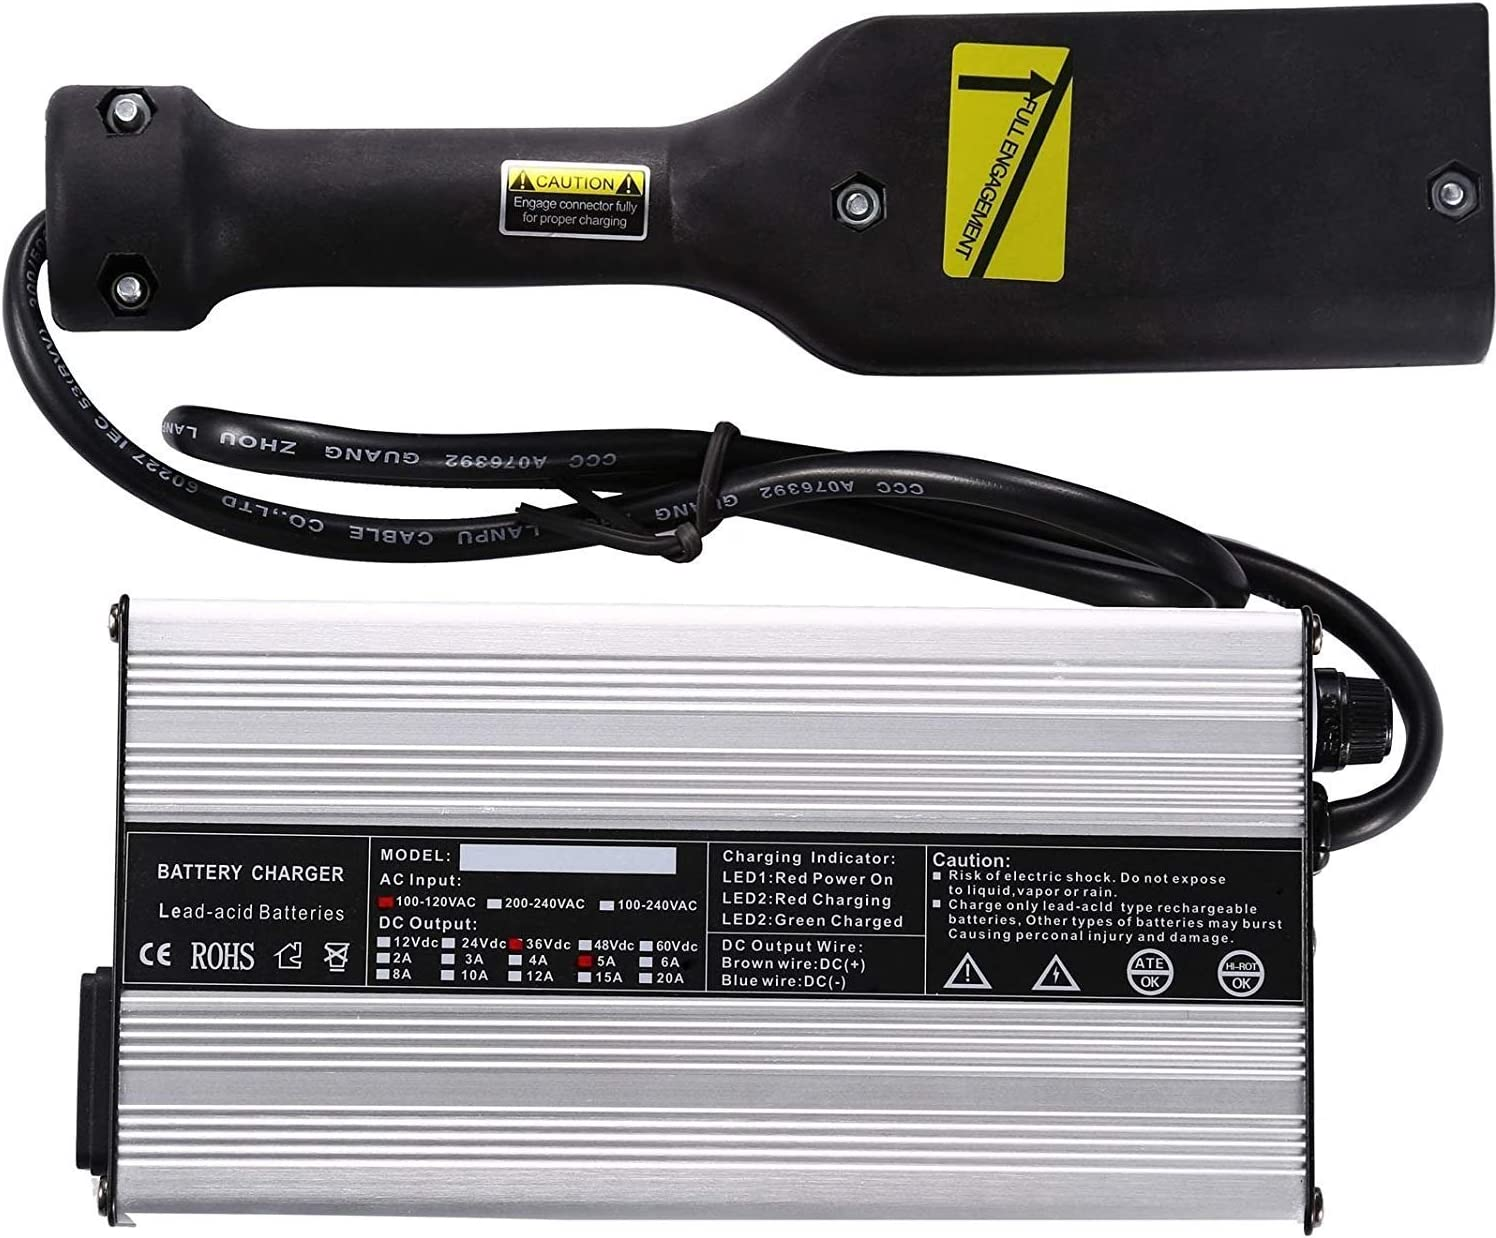 36 Volt 5A New products, world's highest quality popular! Battery Charger for All items in the store TXT Powe EZ-GO Medalist Golf Cart